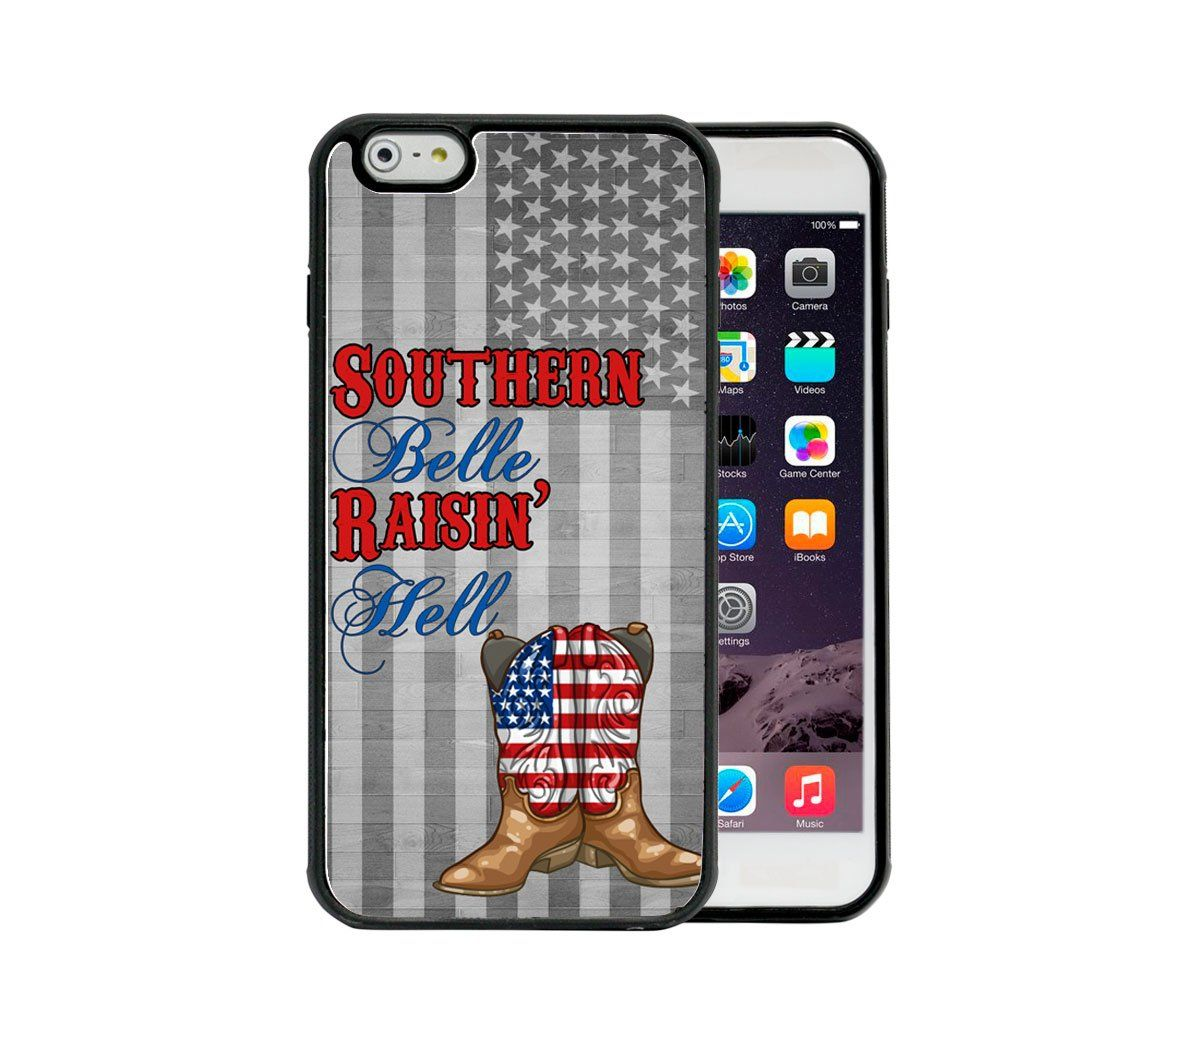 U.S.A. Cowgirl Boots & Flag Wood Southern Belle Raisin Hell Quote Apple iPhone 6 Plus, 5.5 Rubber TPU Silicone Phone Case. Attention Buyer: Only purchase from Legend Graphics, any other seller selling this item is counterfeit and a fake. Lightweight and slim material. Durable material and easy access to ports & buttons. Made precisely for this phone model, giving this case an undoubtedly perfect fit. Attention Buyer: This case is for the iPhone 6 Plus, 5.5 inch.